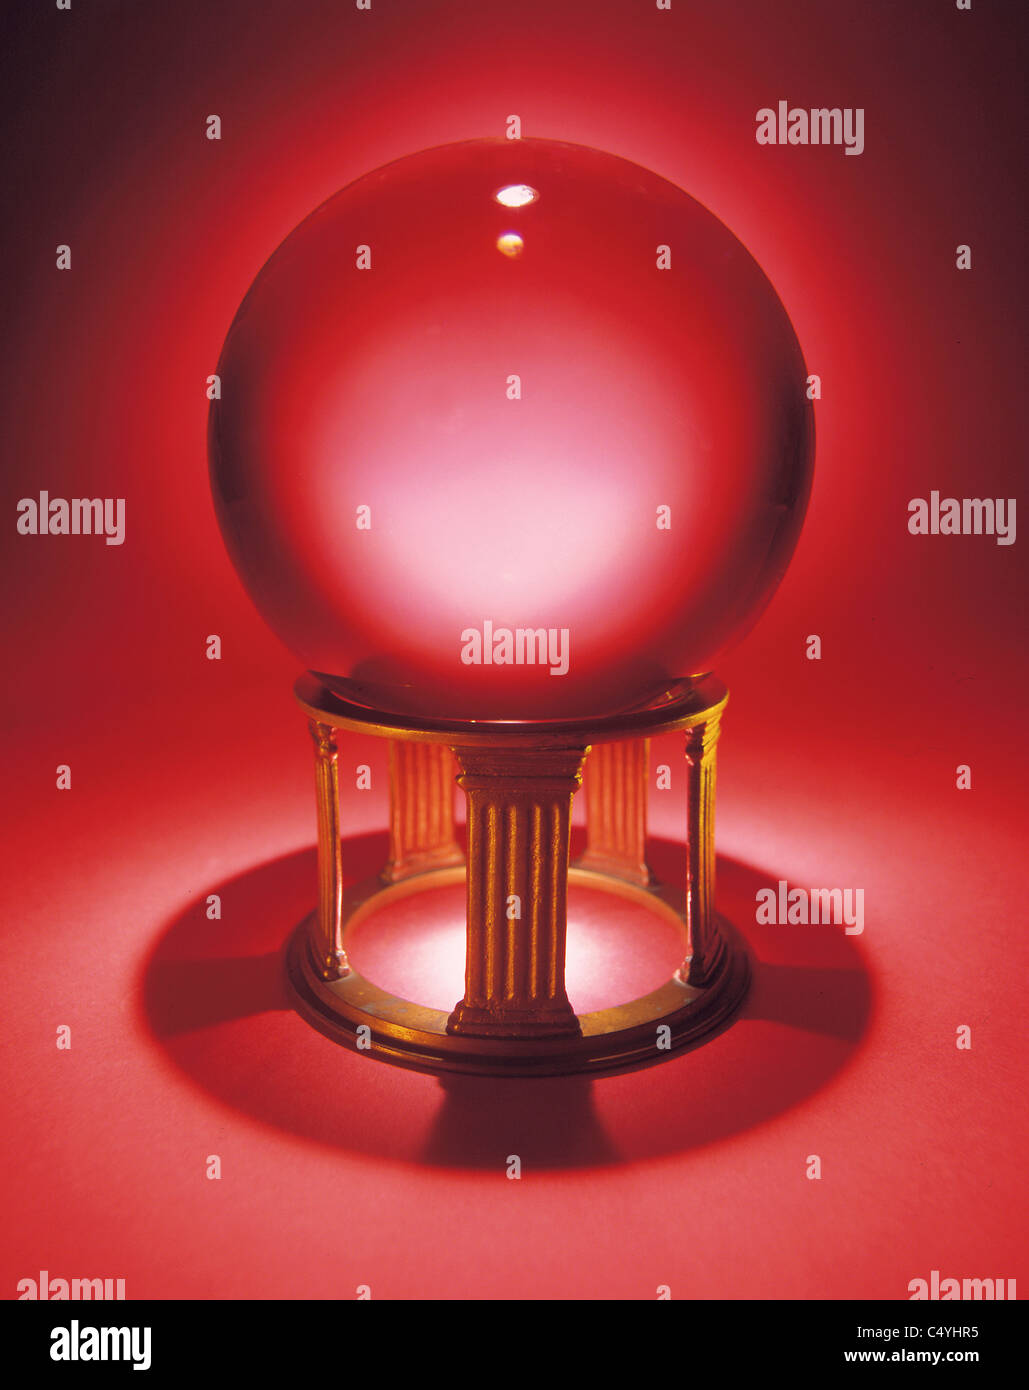 A crystal ball on a small metal stand, glowing red with a shadow. - Stock Image